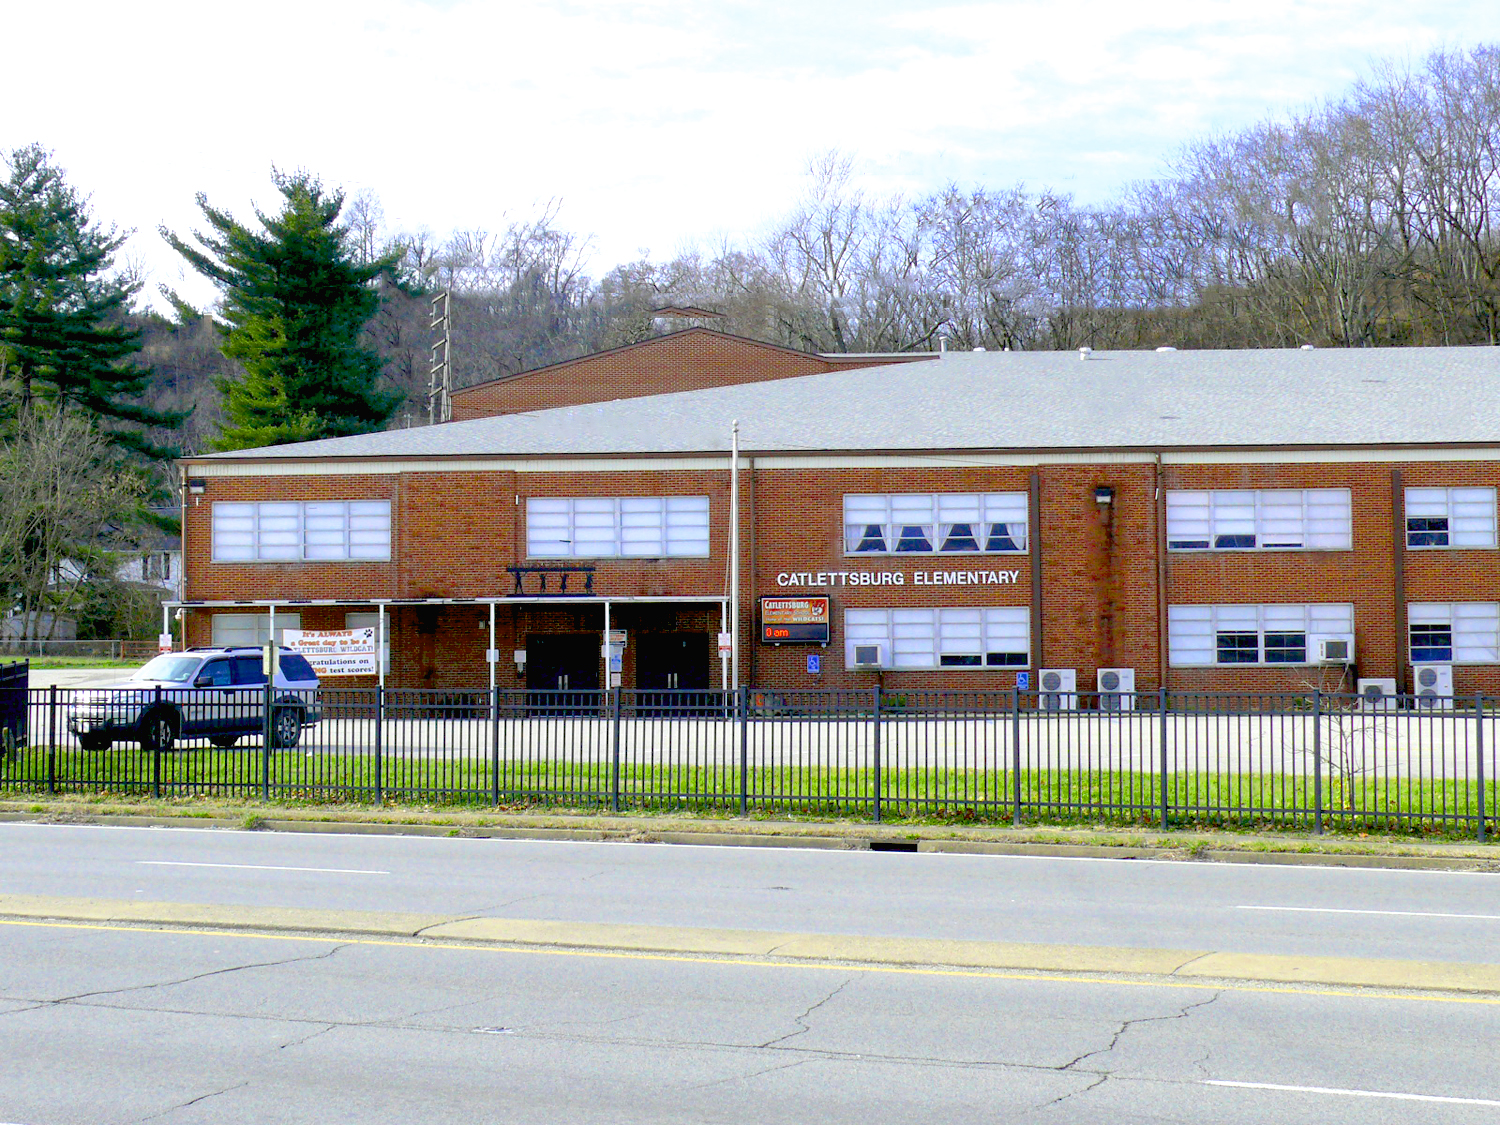 Front view of Catlettsburg Elementary School.